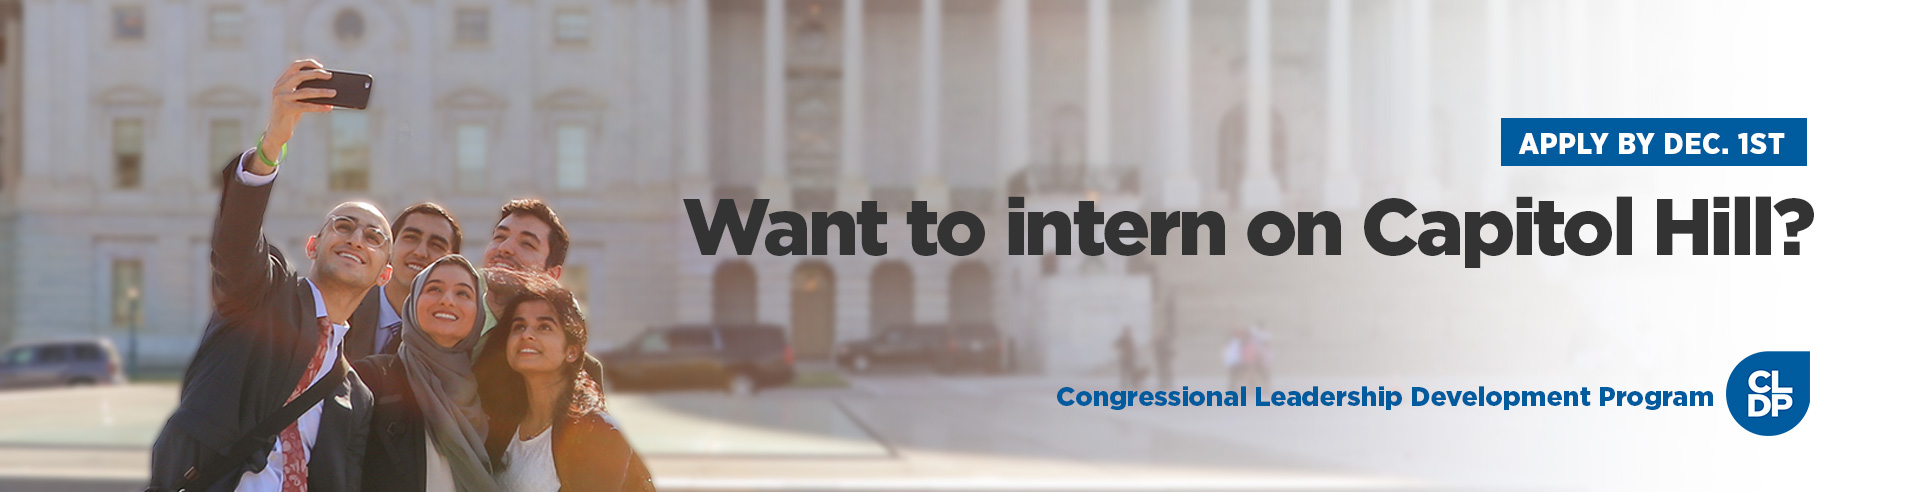 Apply for our Congressional Leadership Development Program